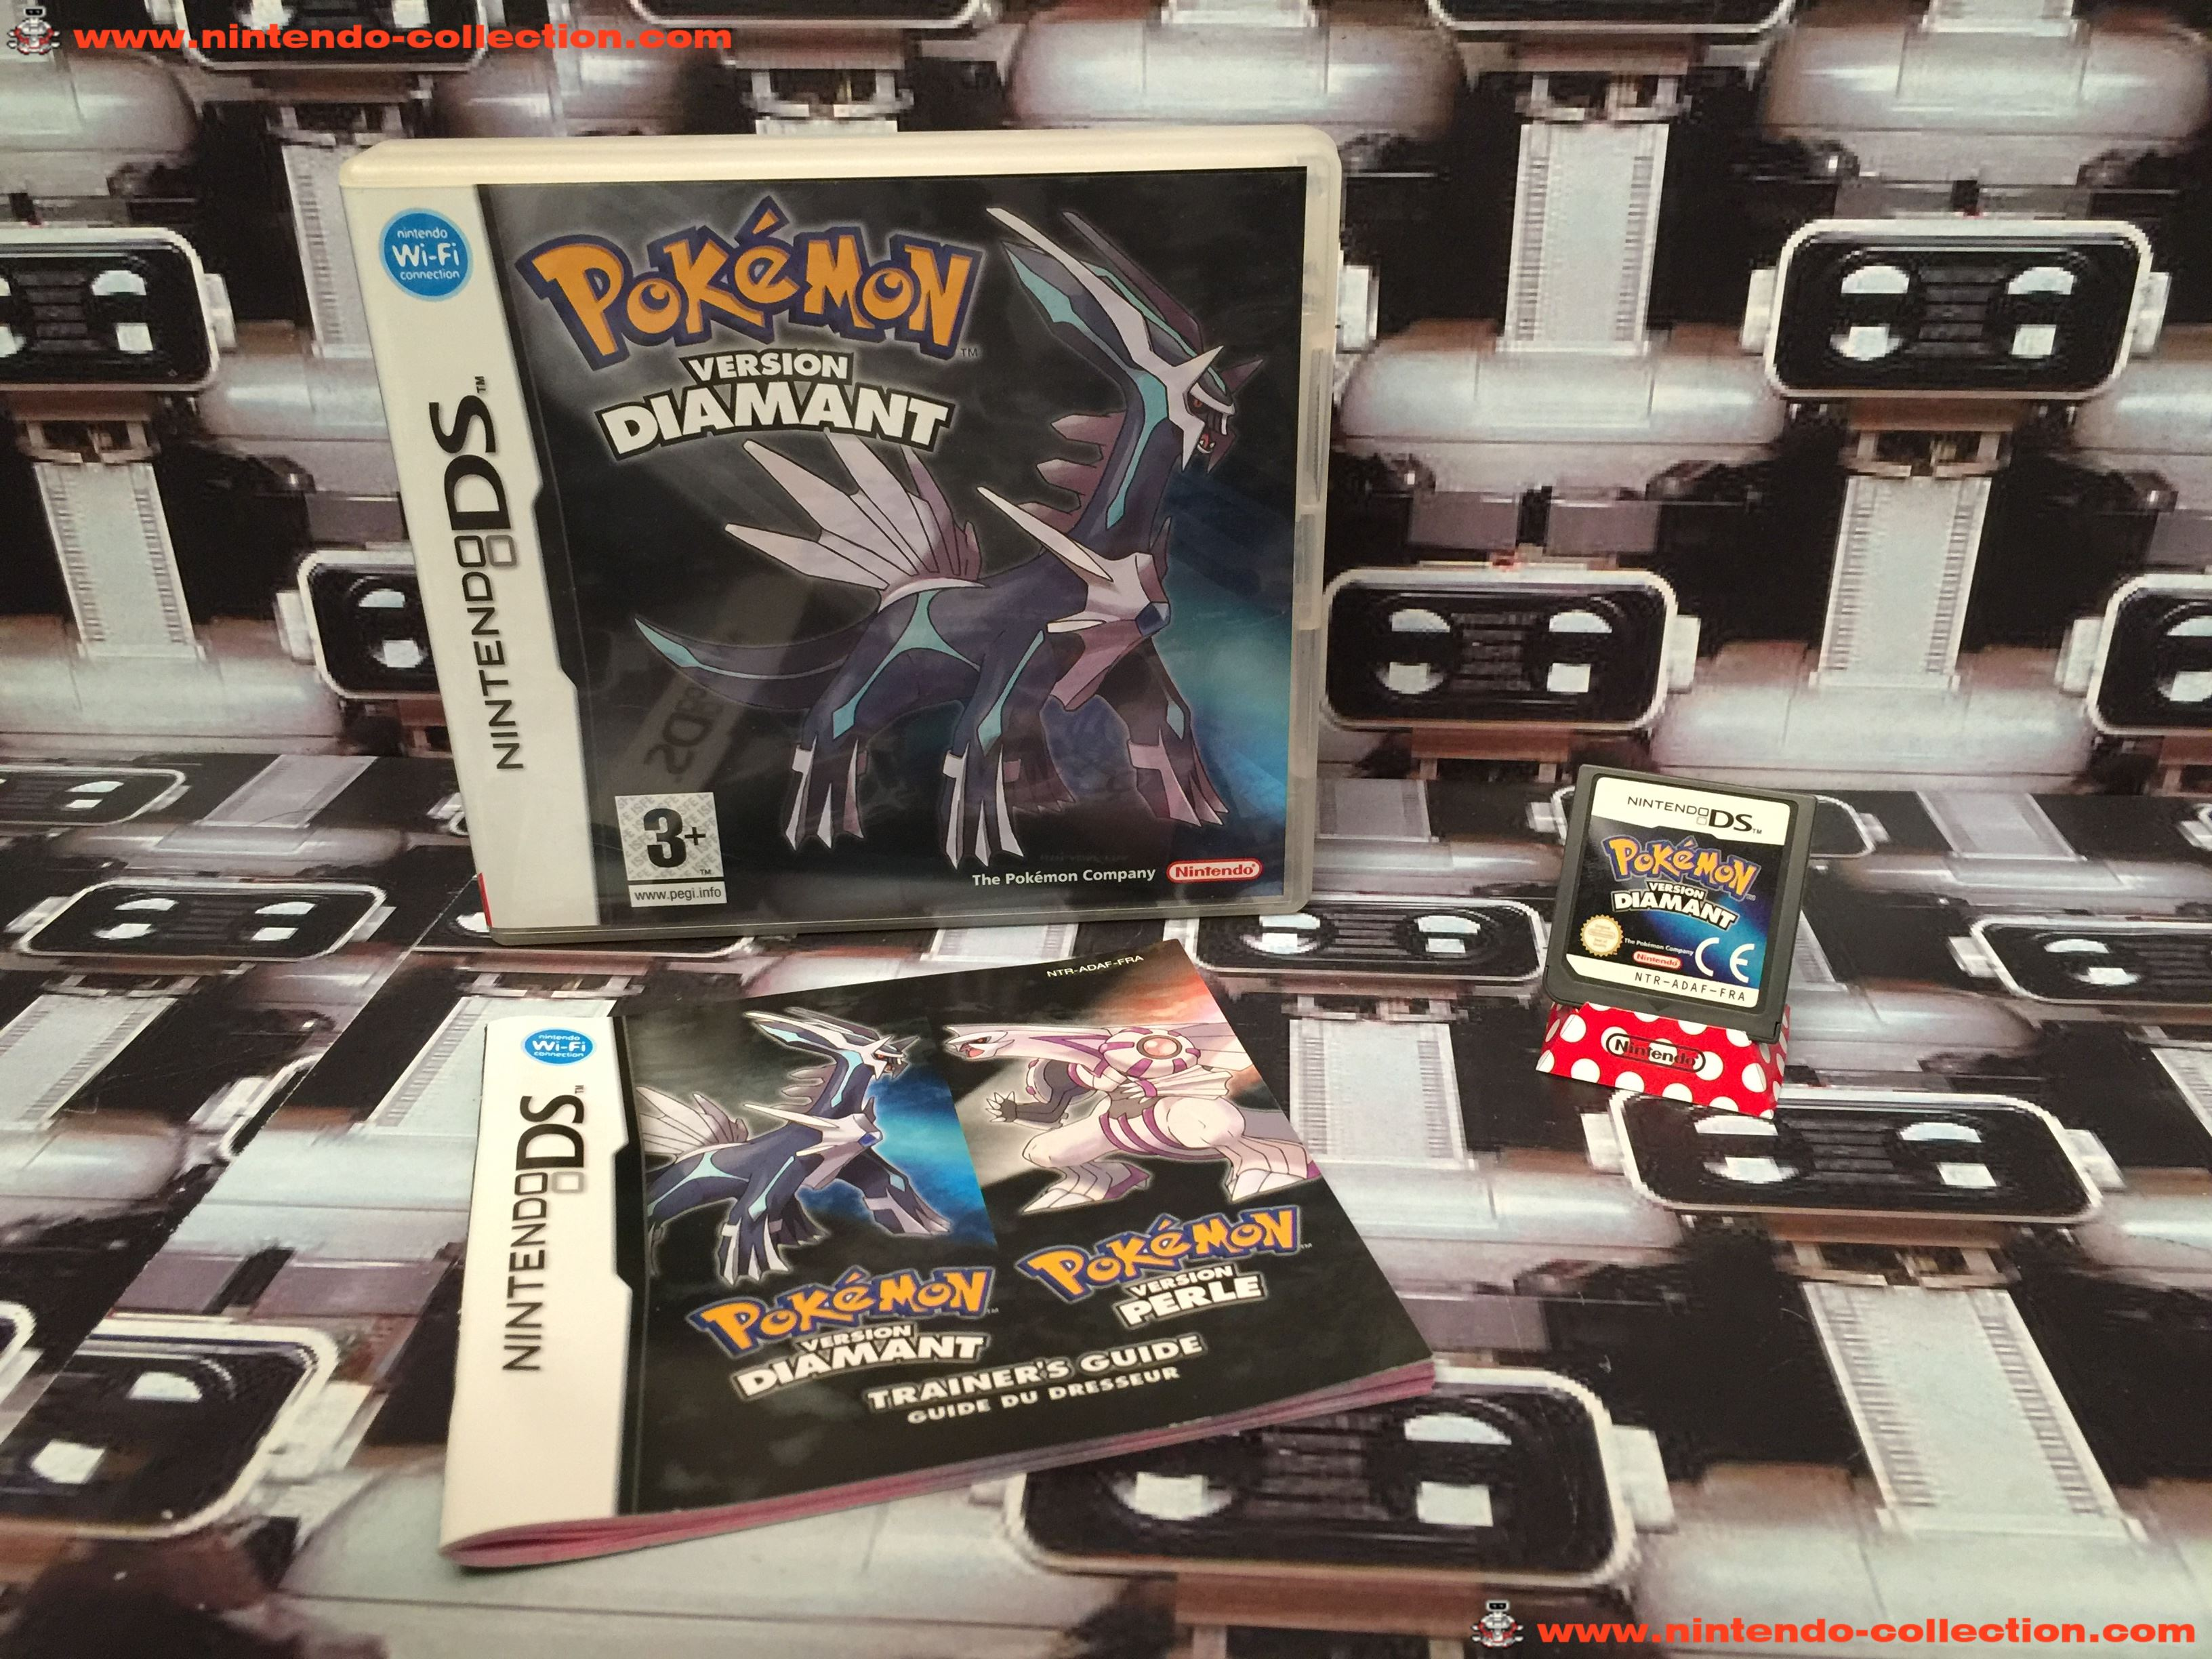 www.nintendo-collection.com - Nintendo DS Jeux Game Pokemon Version Diamant Euro Fr